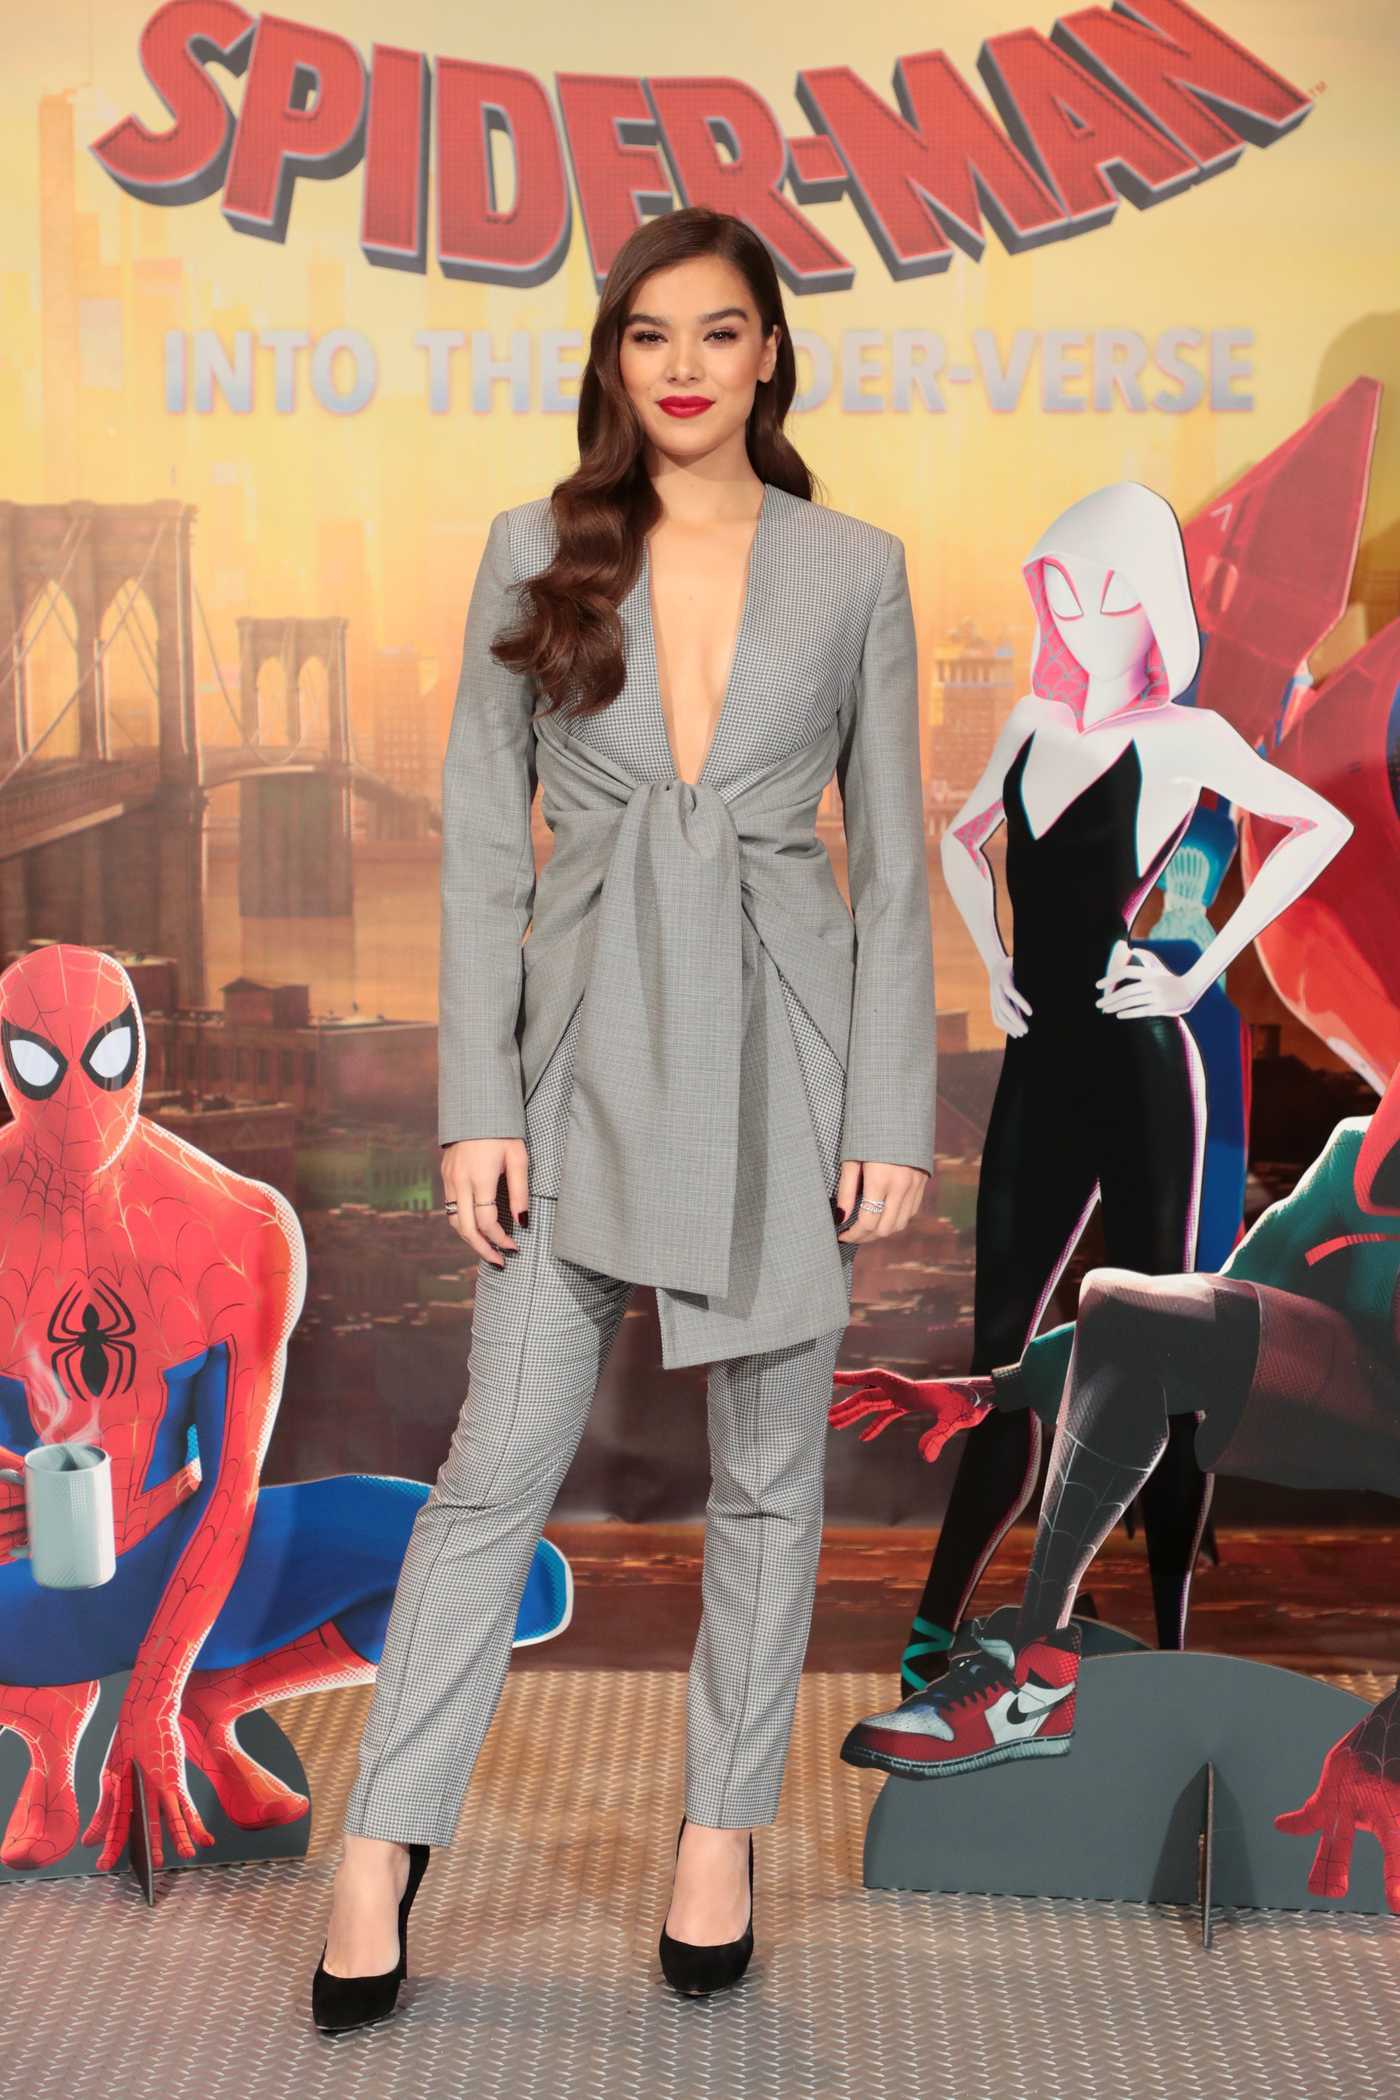 Hailee Steinfeld Attends Spider-Man: Into the Spiderverse Photocall in Los Angeles 11/30/2018